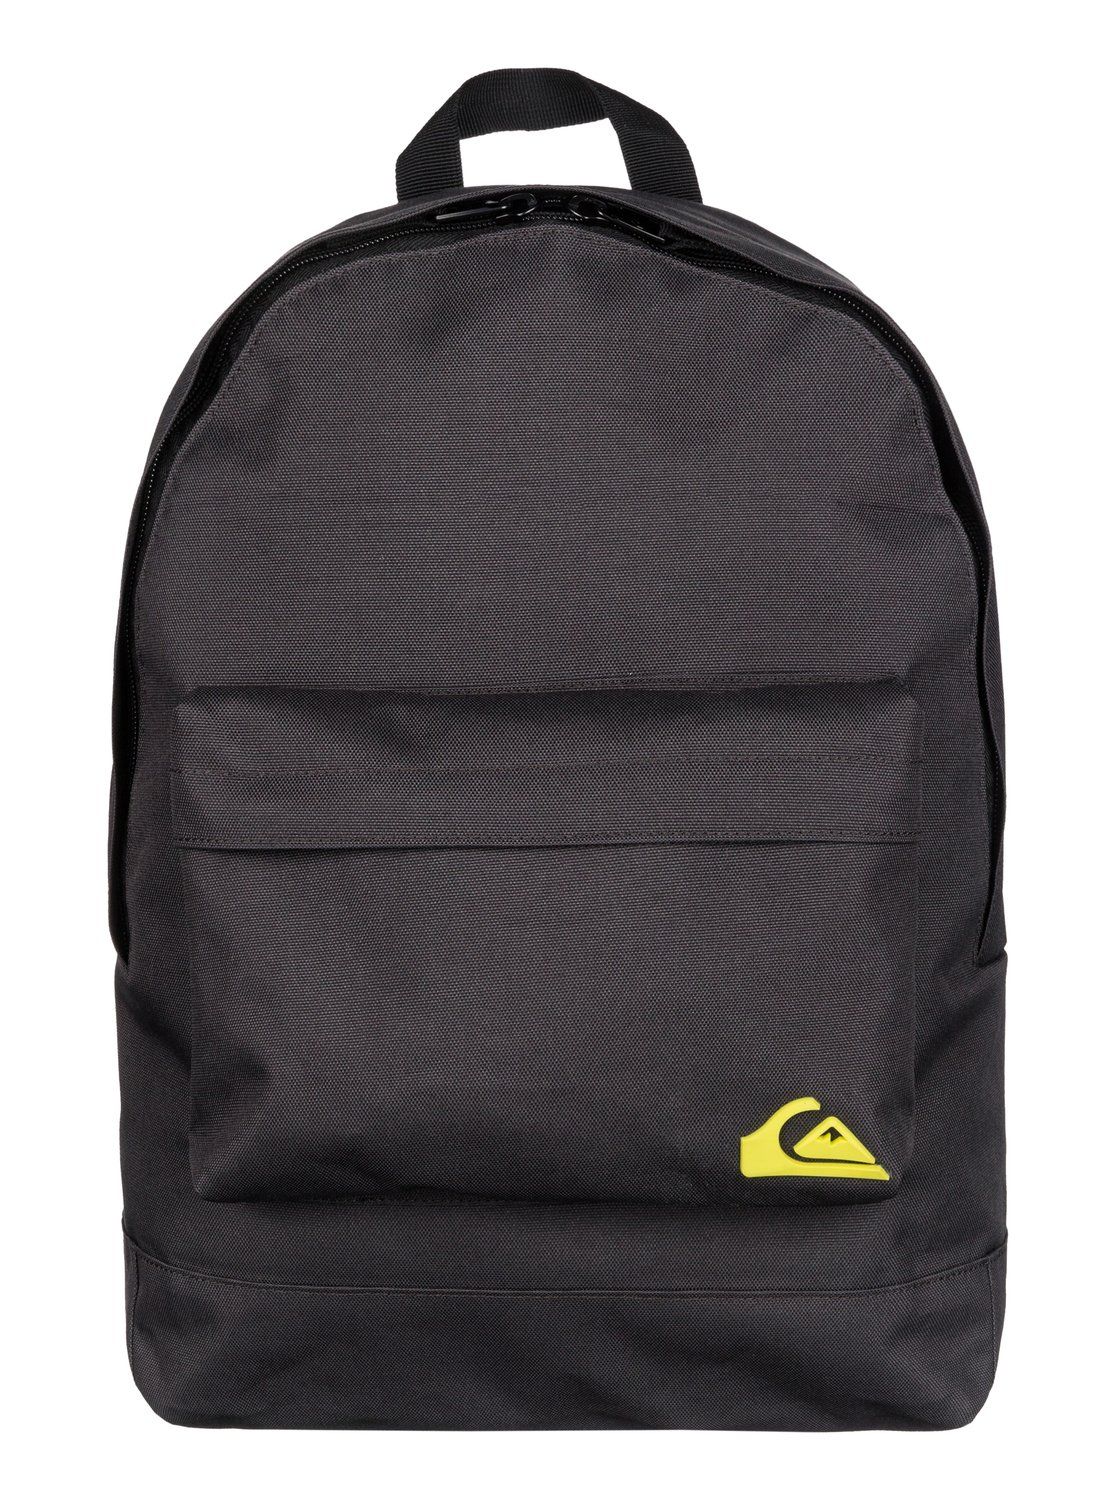 Quiksilver Sac à dos Shd Everyday Edition p5pIai7Gm